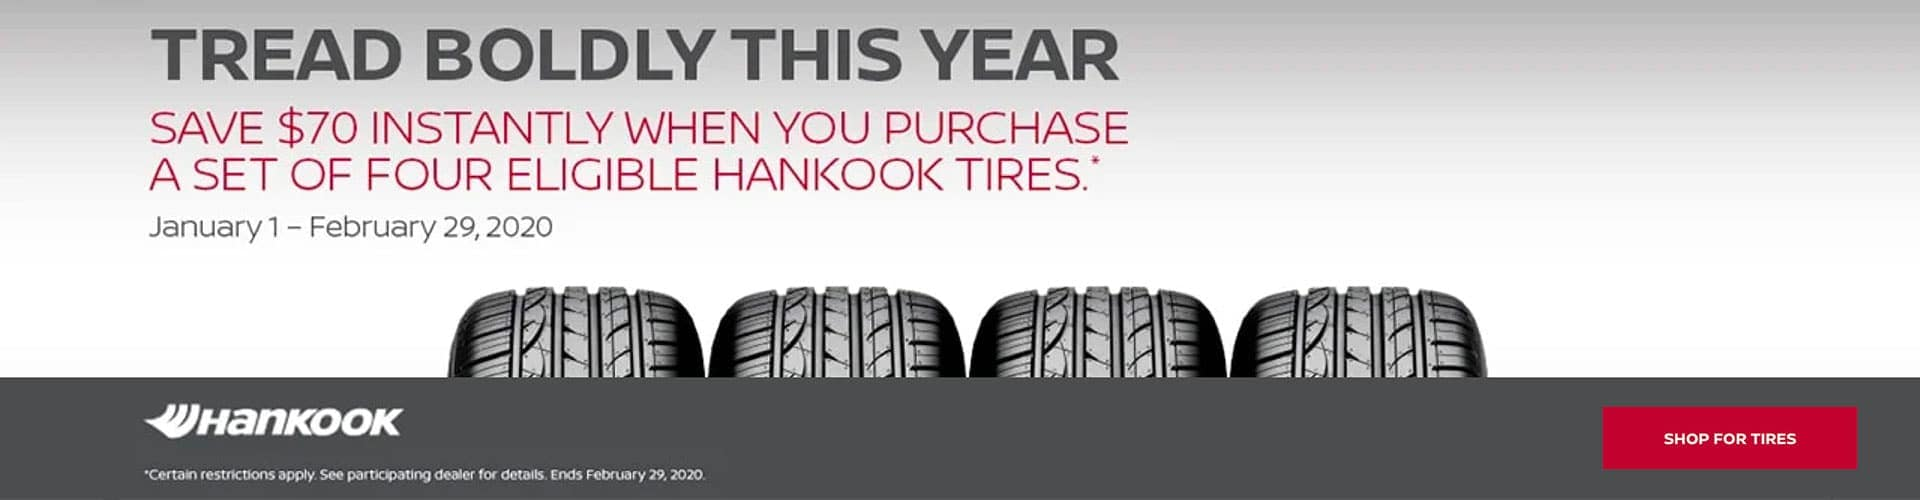 Tread Boldy This Year: Save $70 instantly when you purchase a set of four eligible Hankook tires